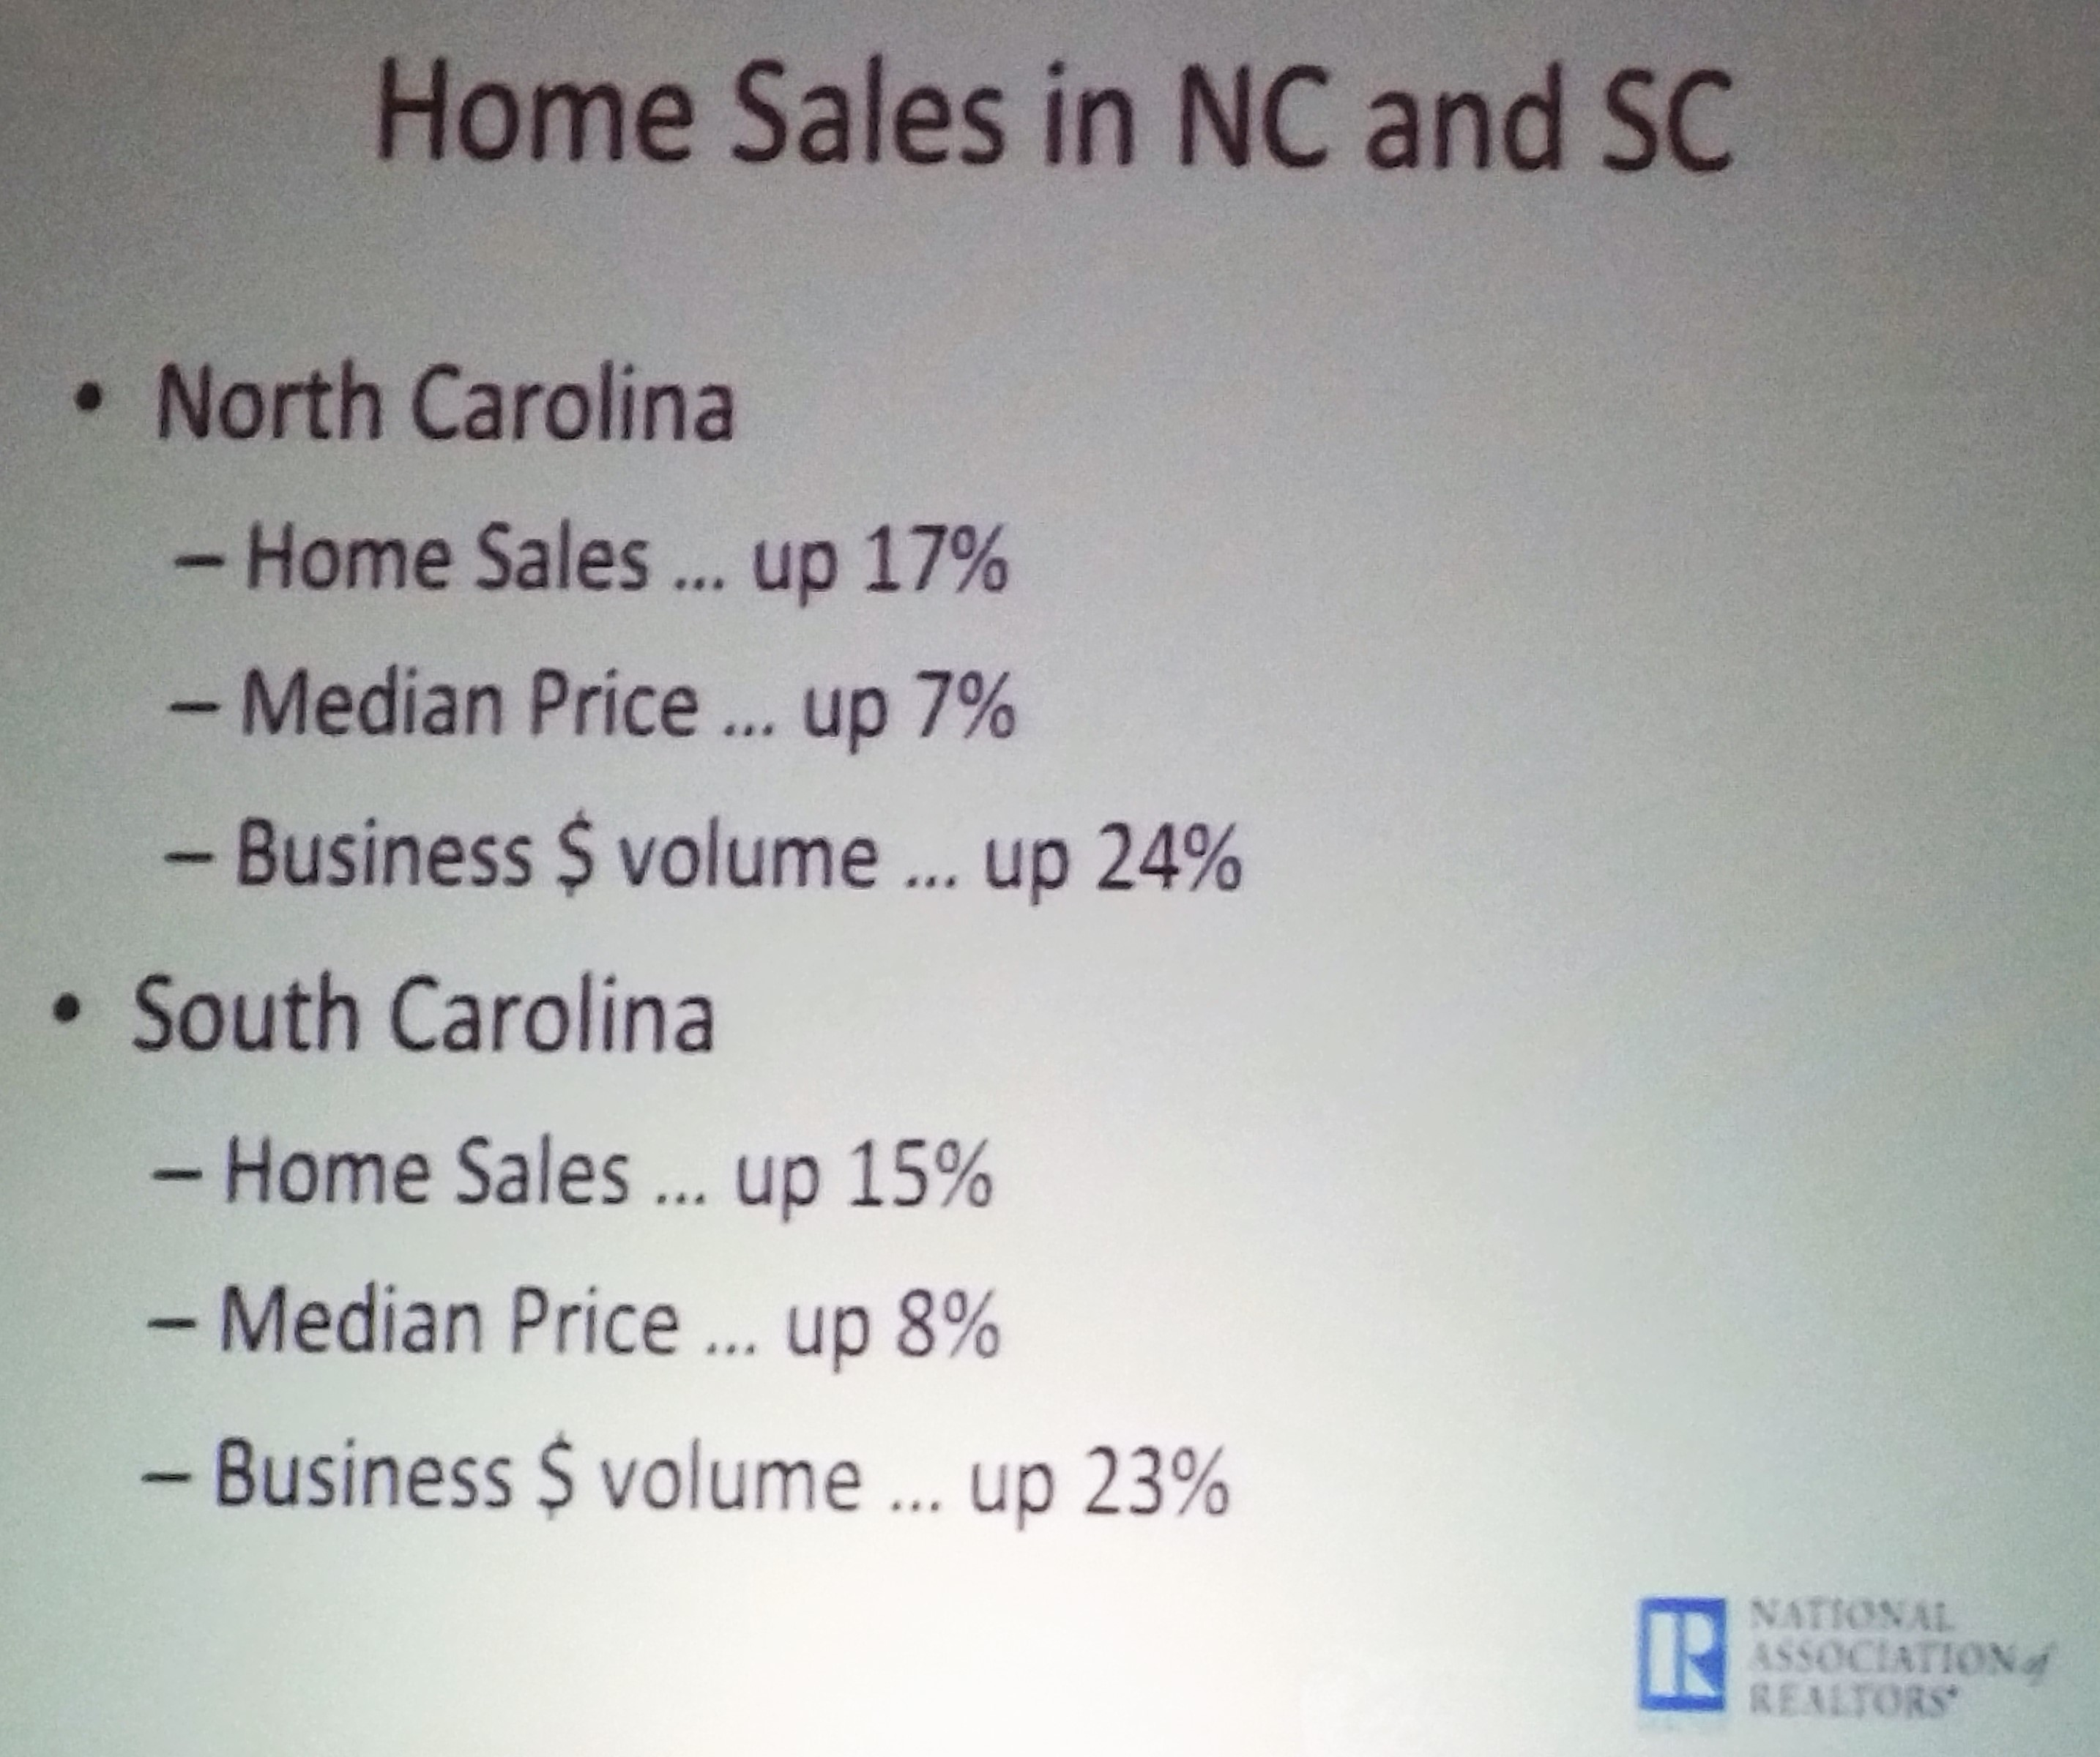 NC and SC Home Sales